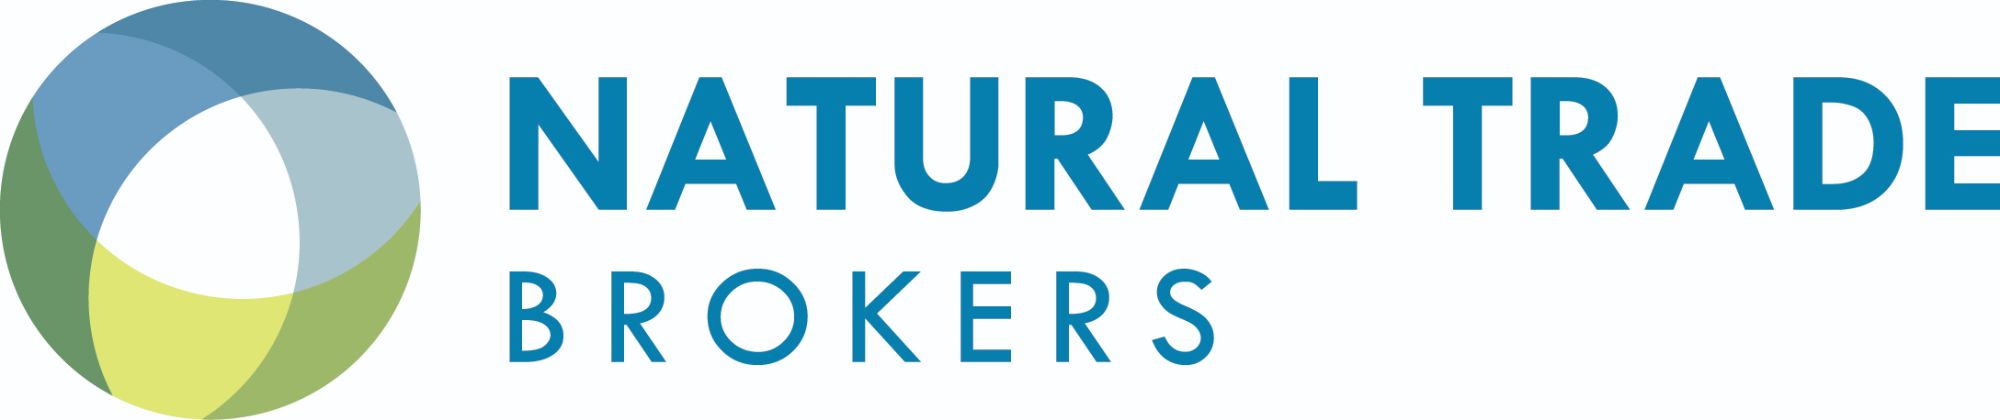 Natural Trade Brokers The leading sales brokerage team for the independent health food trade